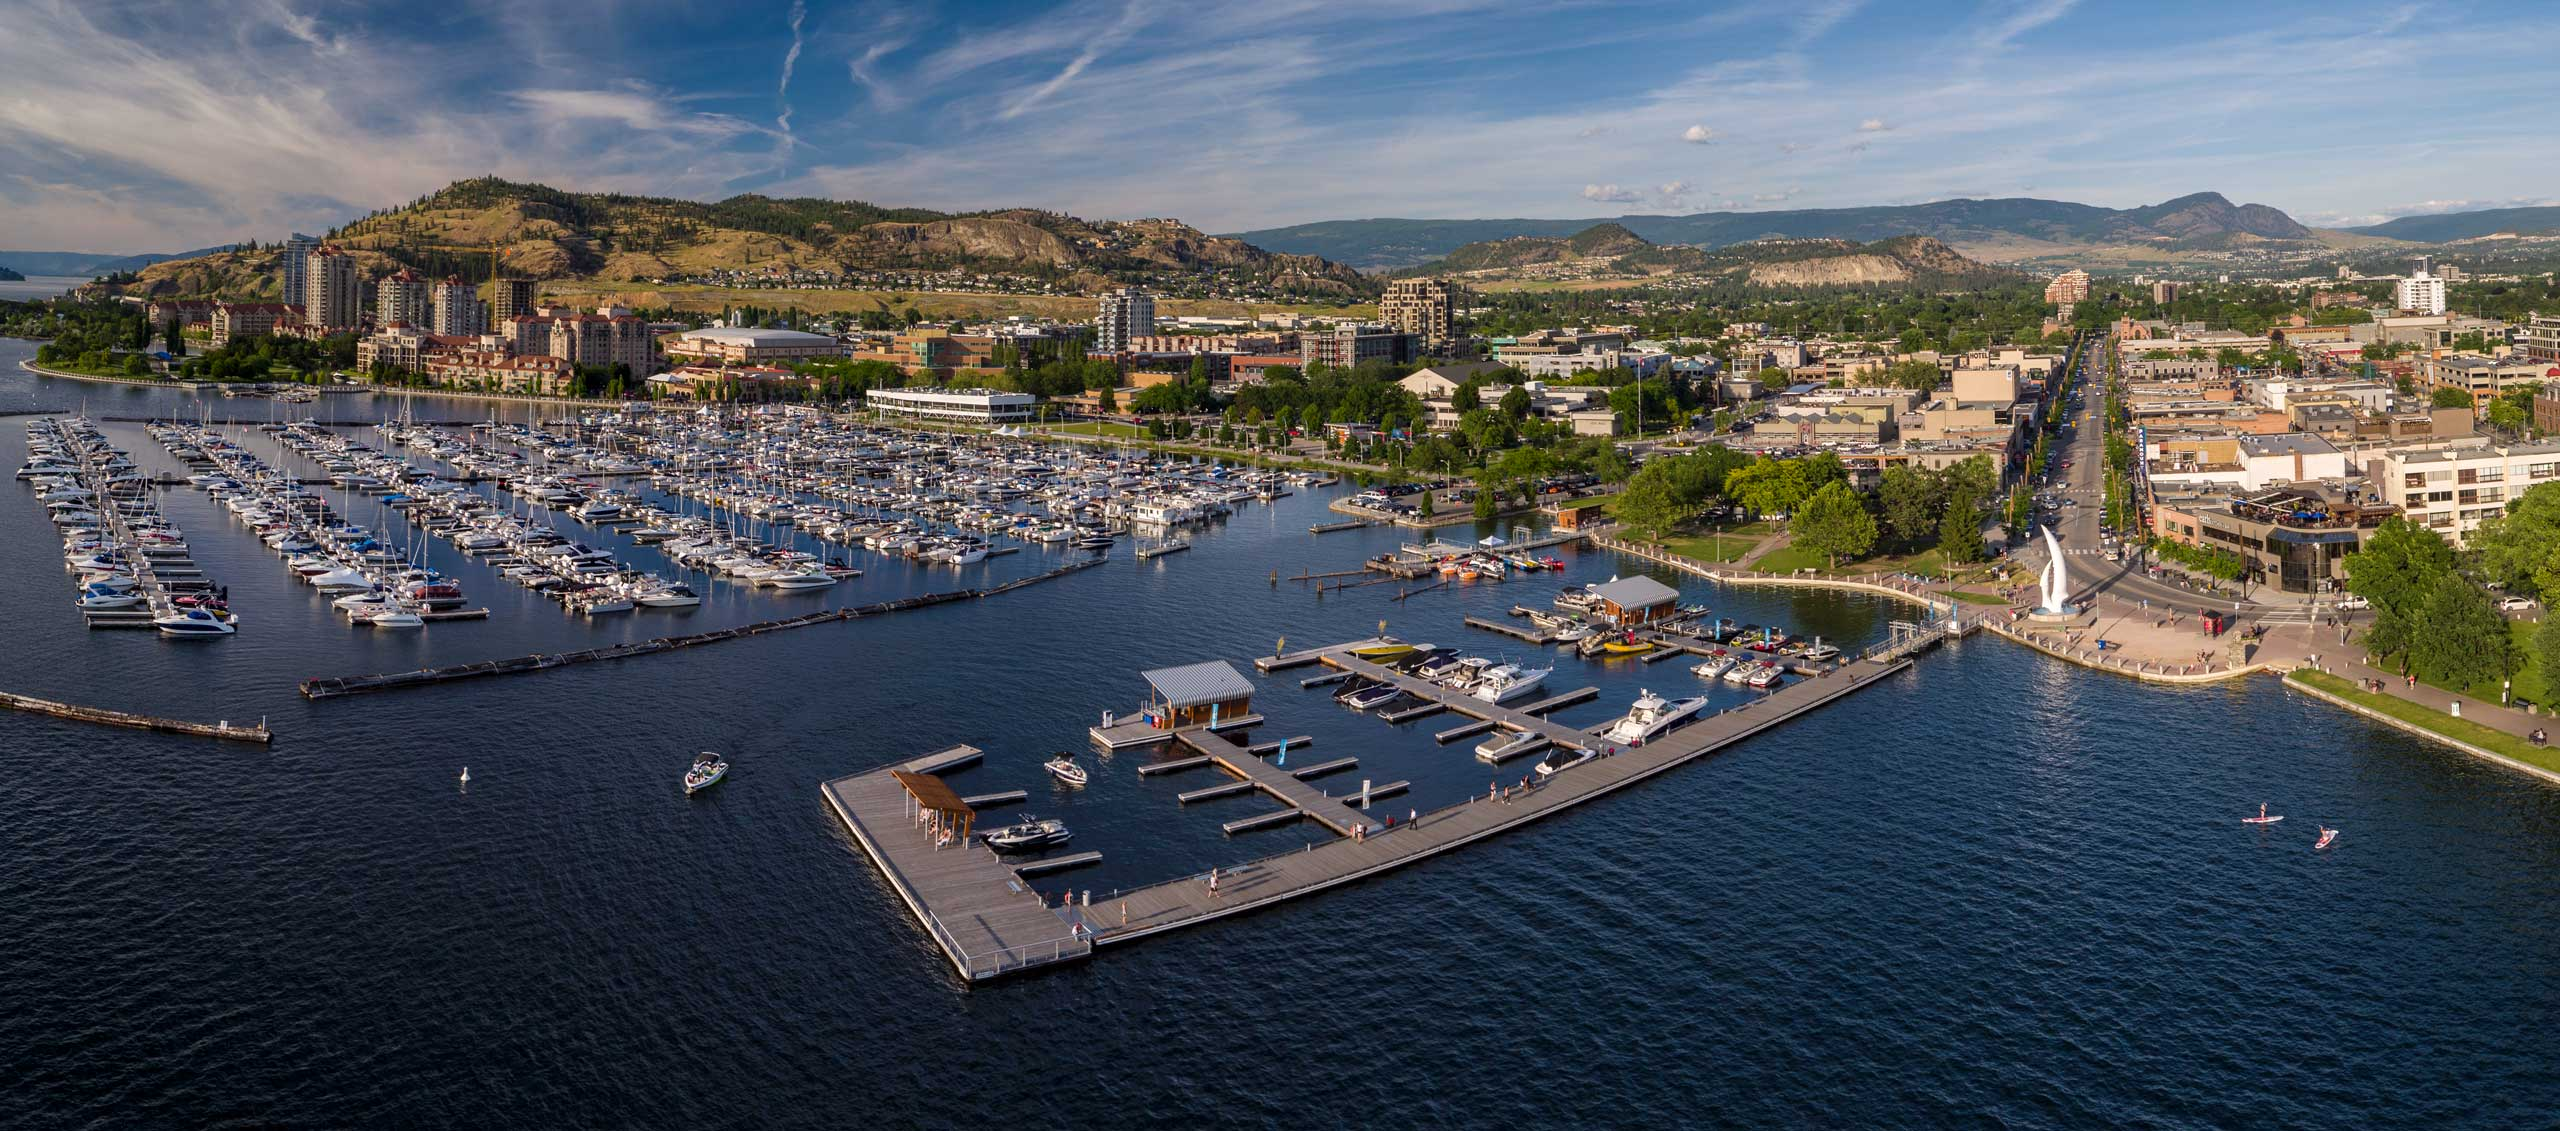 Our South Bay pontoon boat is the perfect vessel for a fully guided tour on Okanagan Lake.